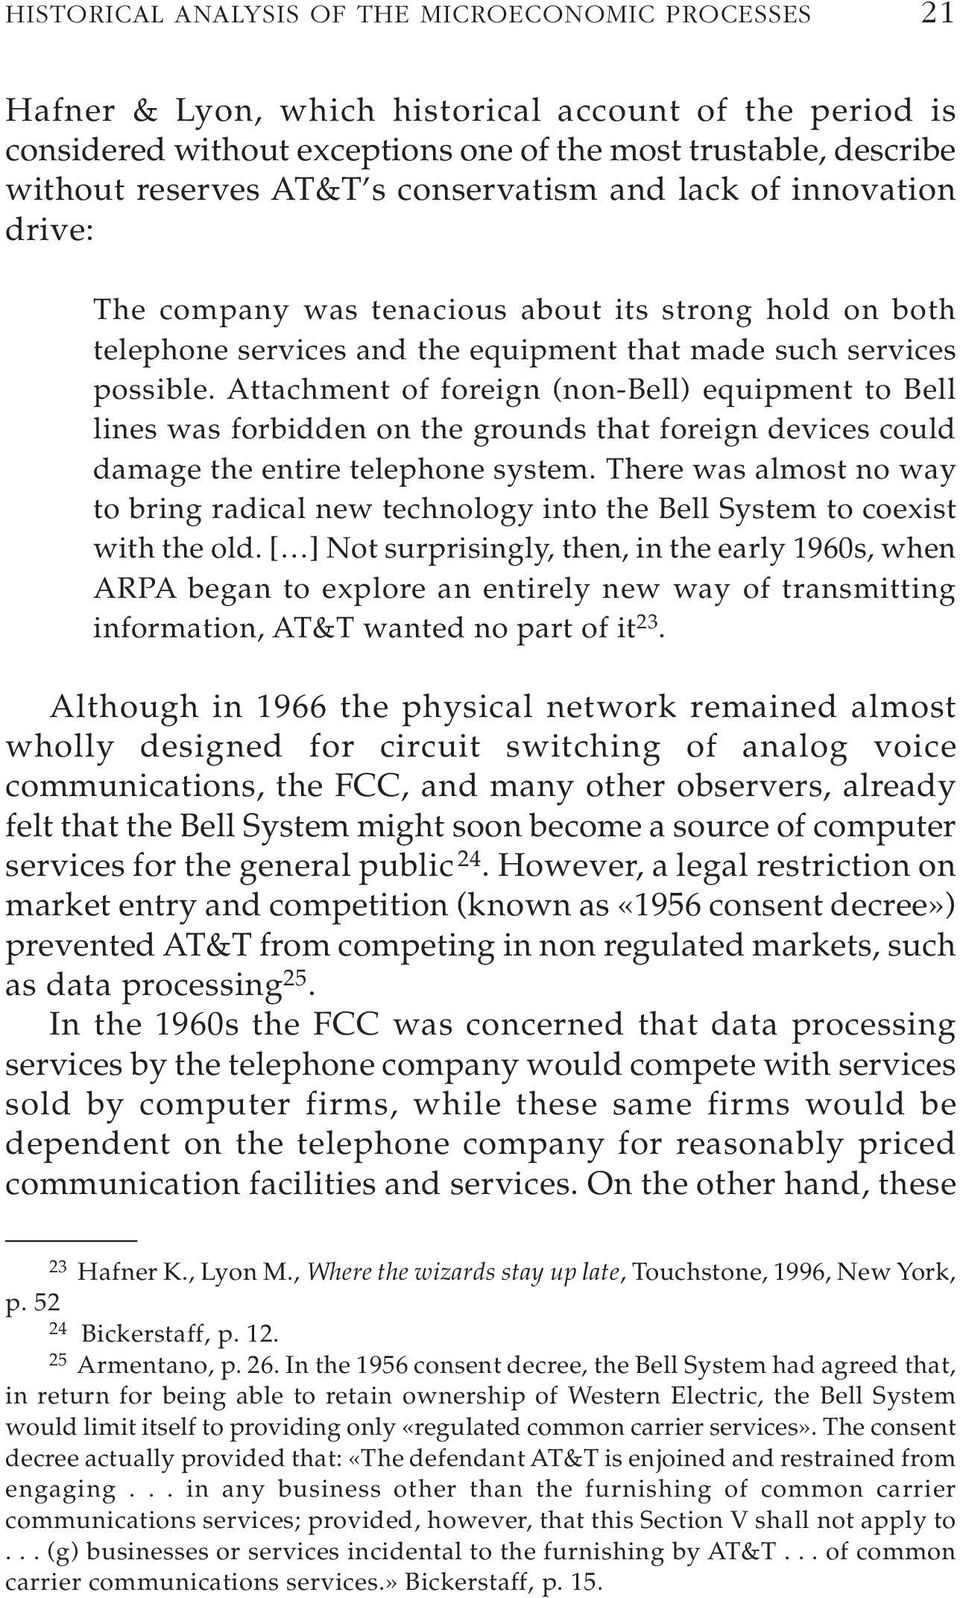 Attachment of foreign (non-bell) equipment to Bell lines was forbidden on the grounds that foreign devices could damage the entire telephone system.